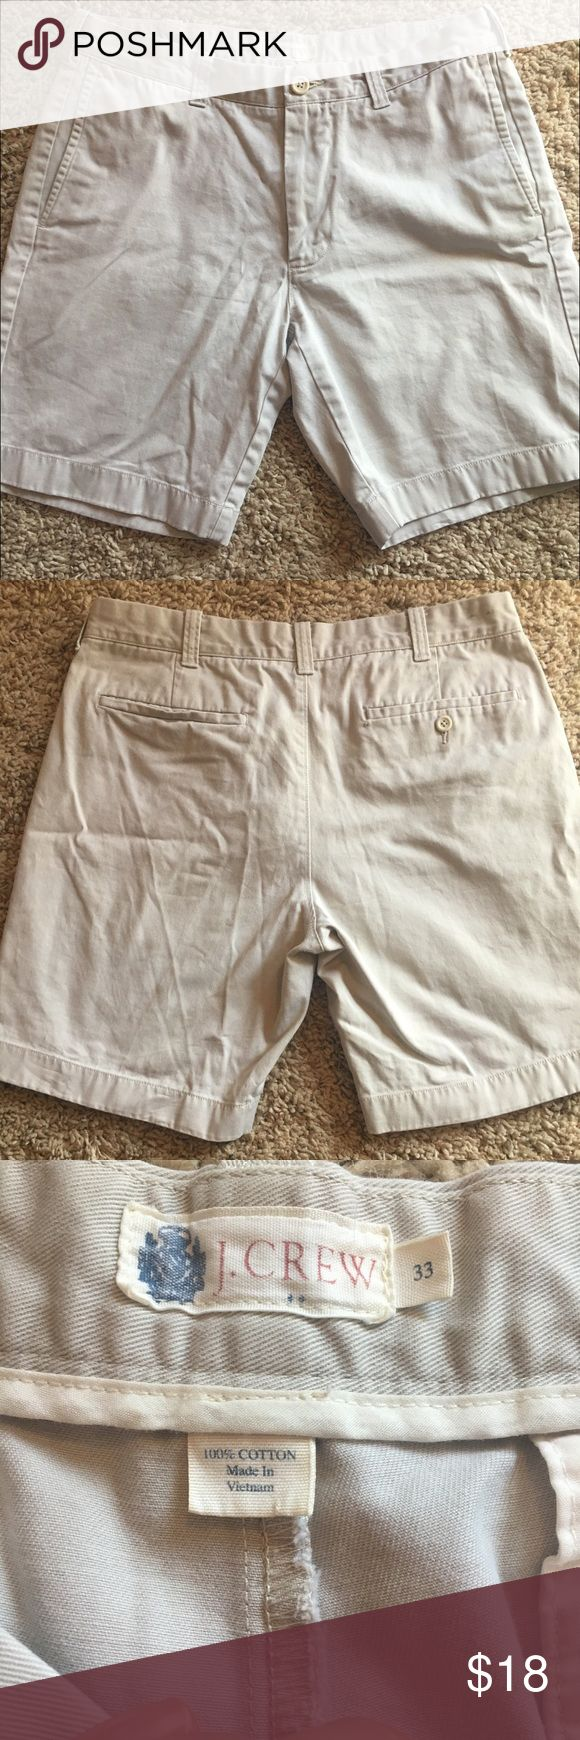 "J. Crew Men'a 9"" Broken-In Gramercy Shorts Men's 9"" Gramercy cotton shorts in light khaki. Like new, maybe worn once. Too small for my husband! Perfect neutral shorts! J. Crew Shorts"